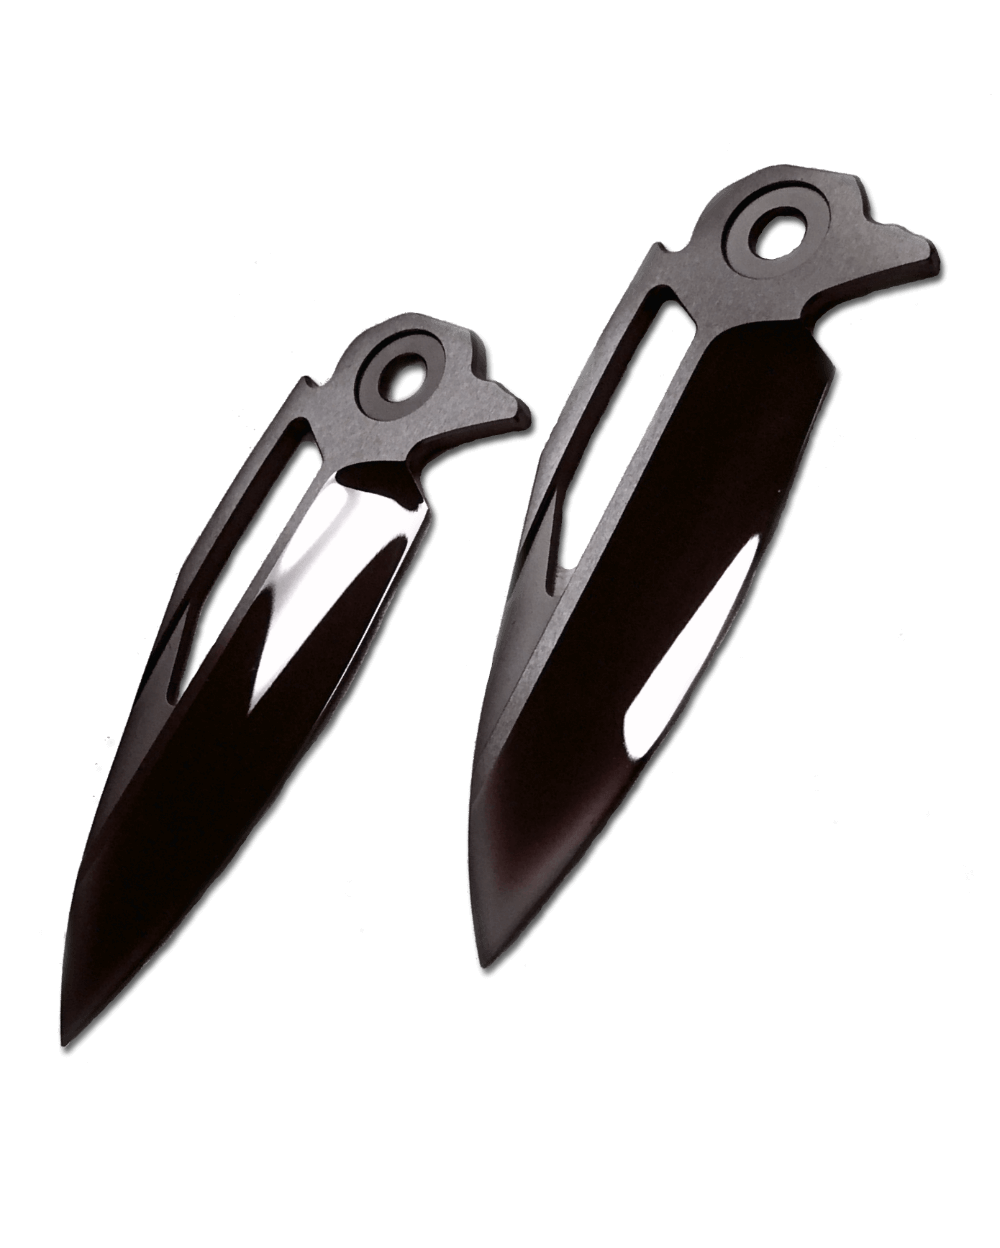 Photo of the coated knife blades